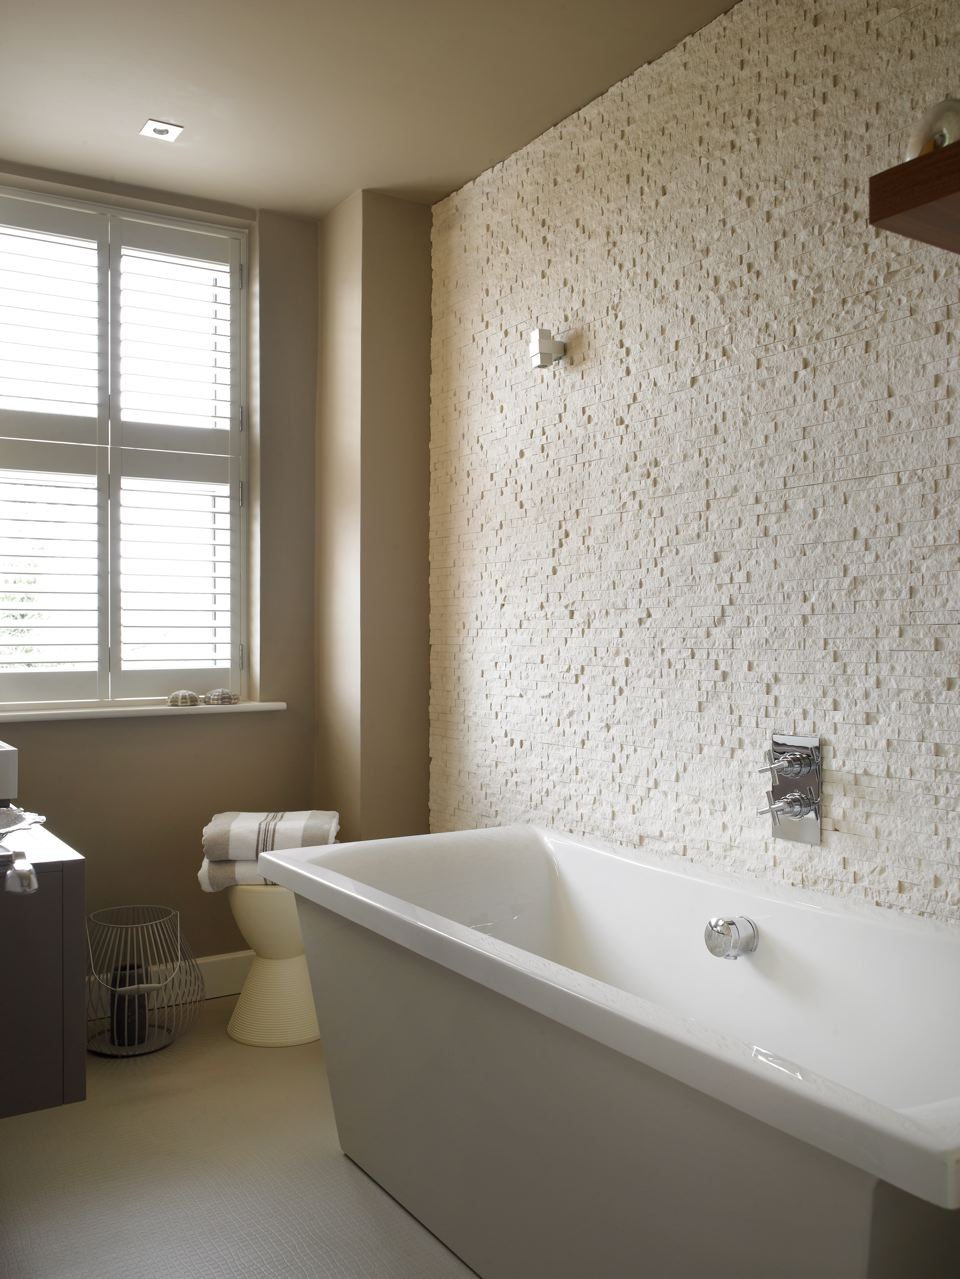 Portland stone tiled bathroom